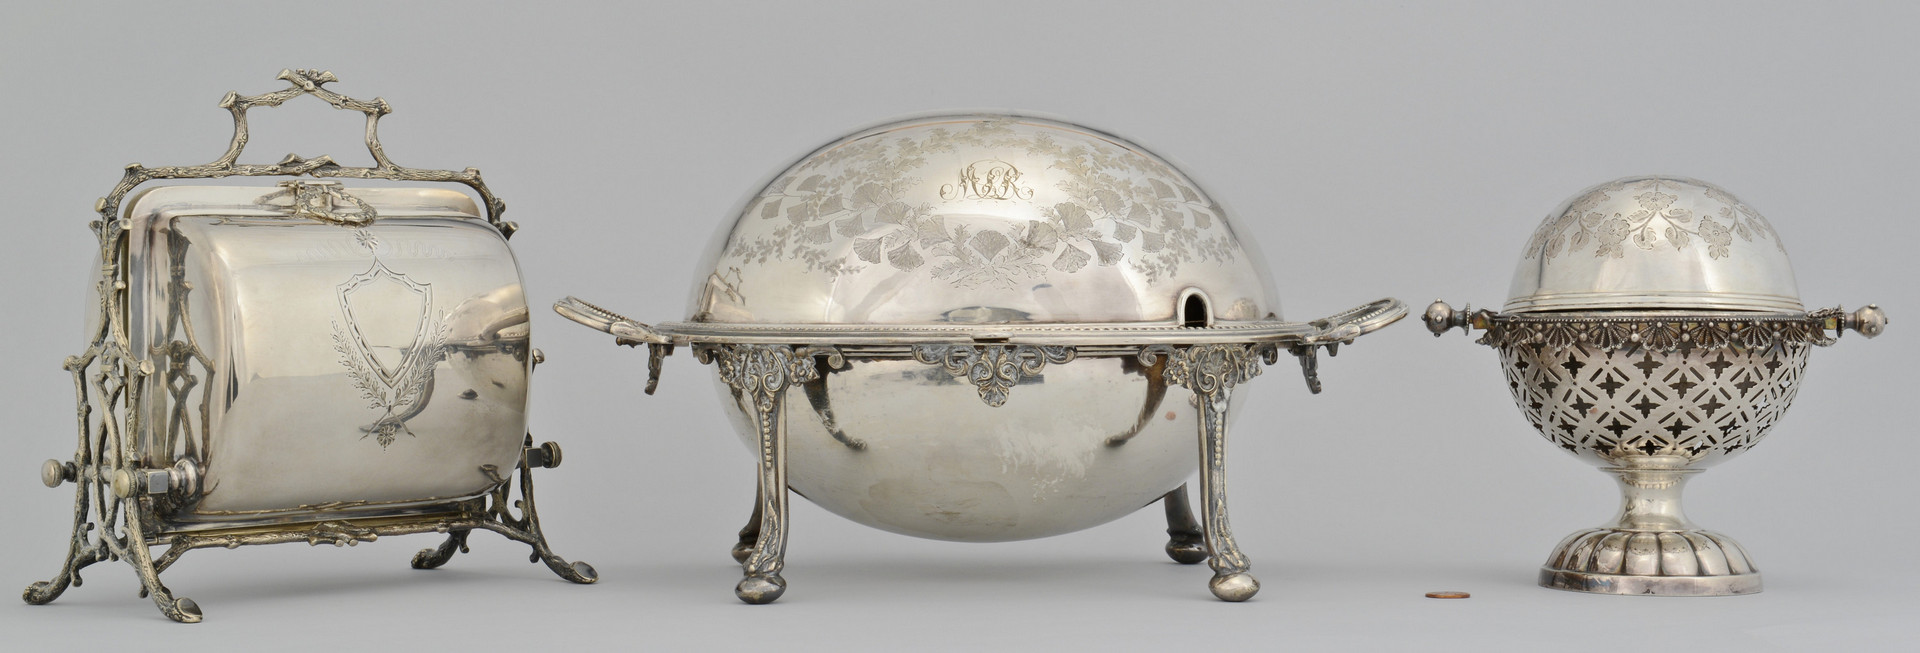 Lot 923: Biscuit Box, Bacon Server, Butter Dome